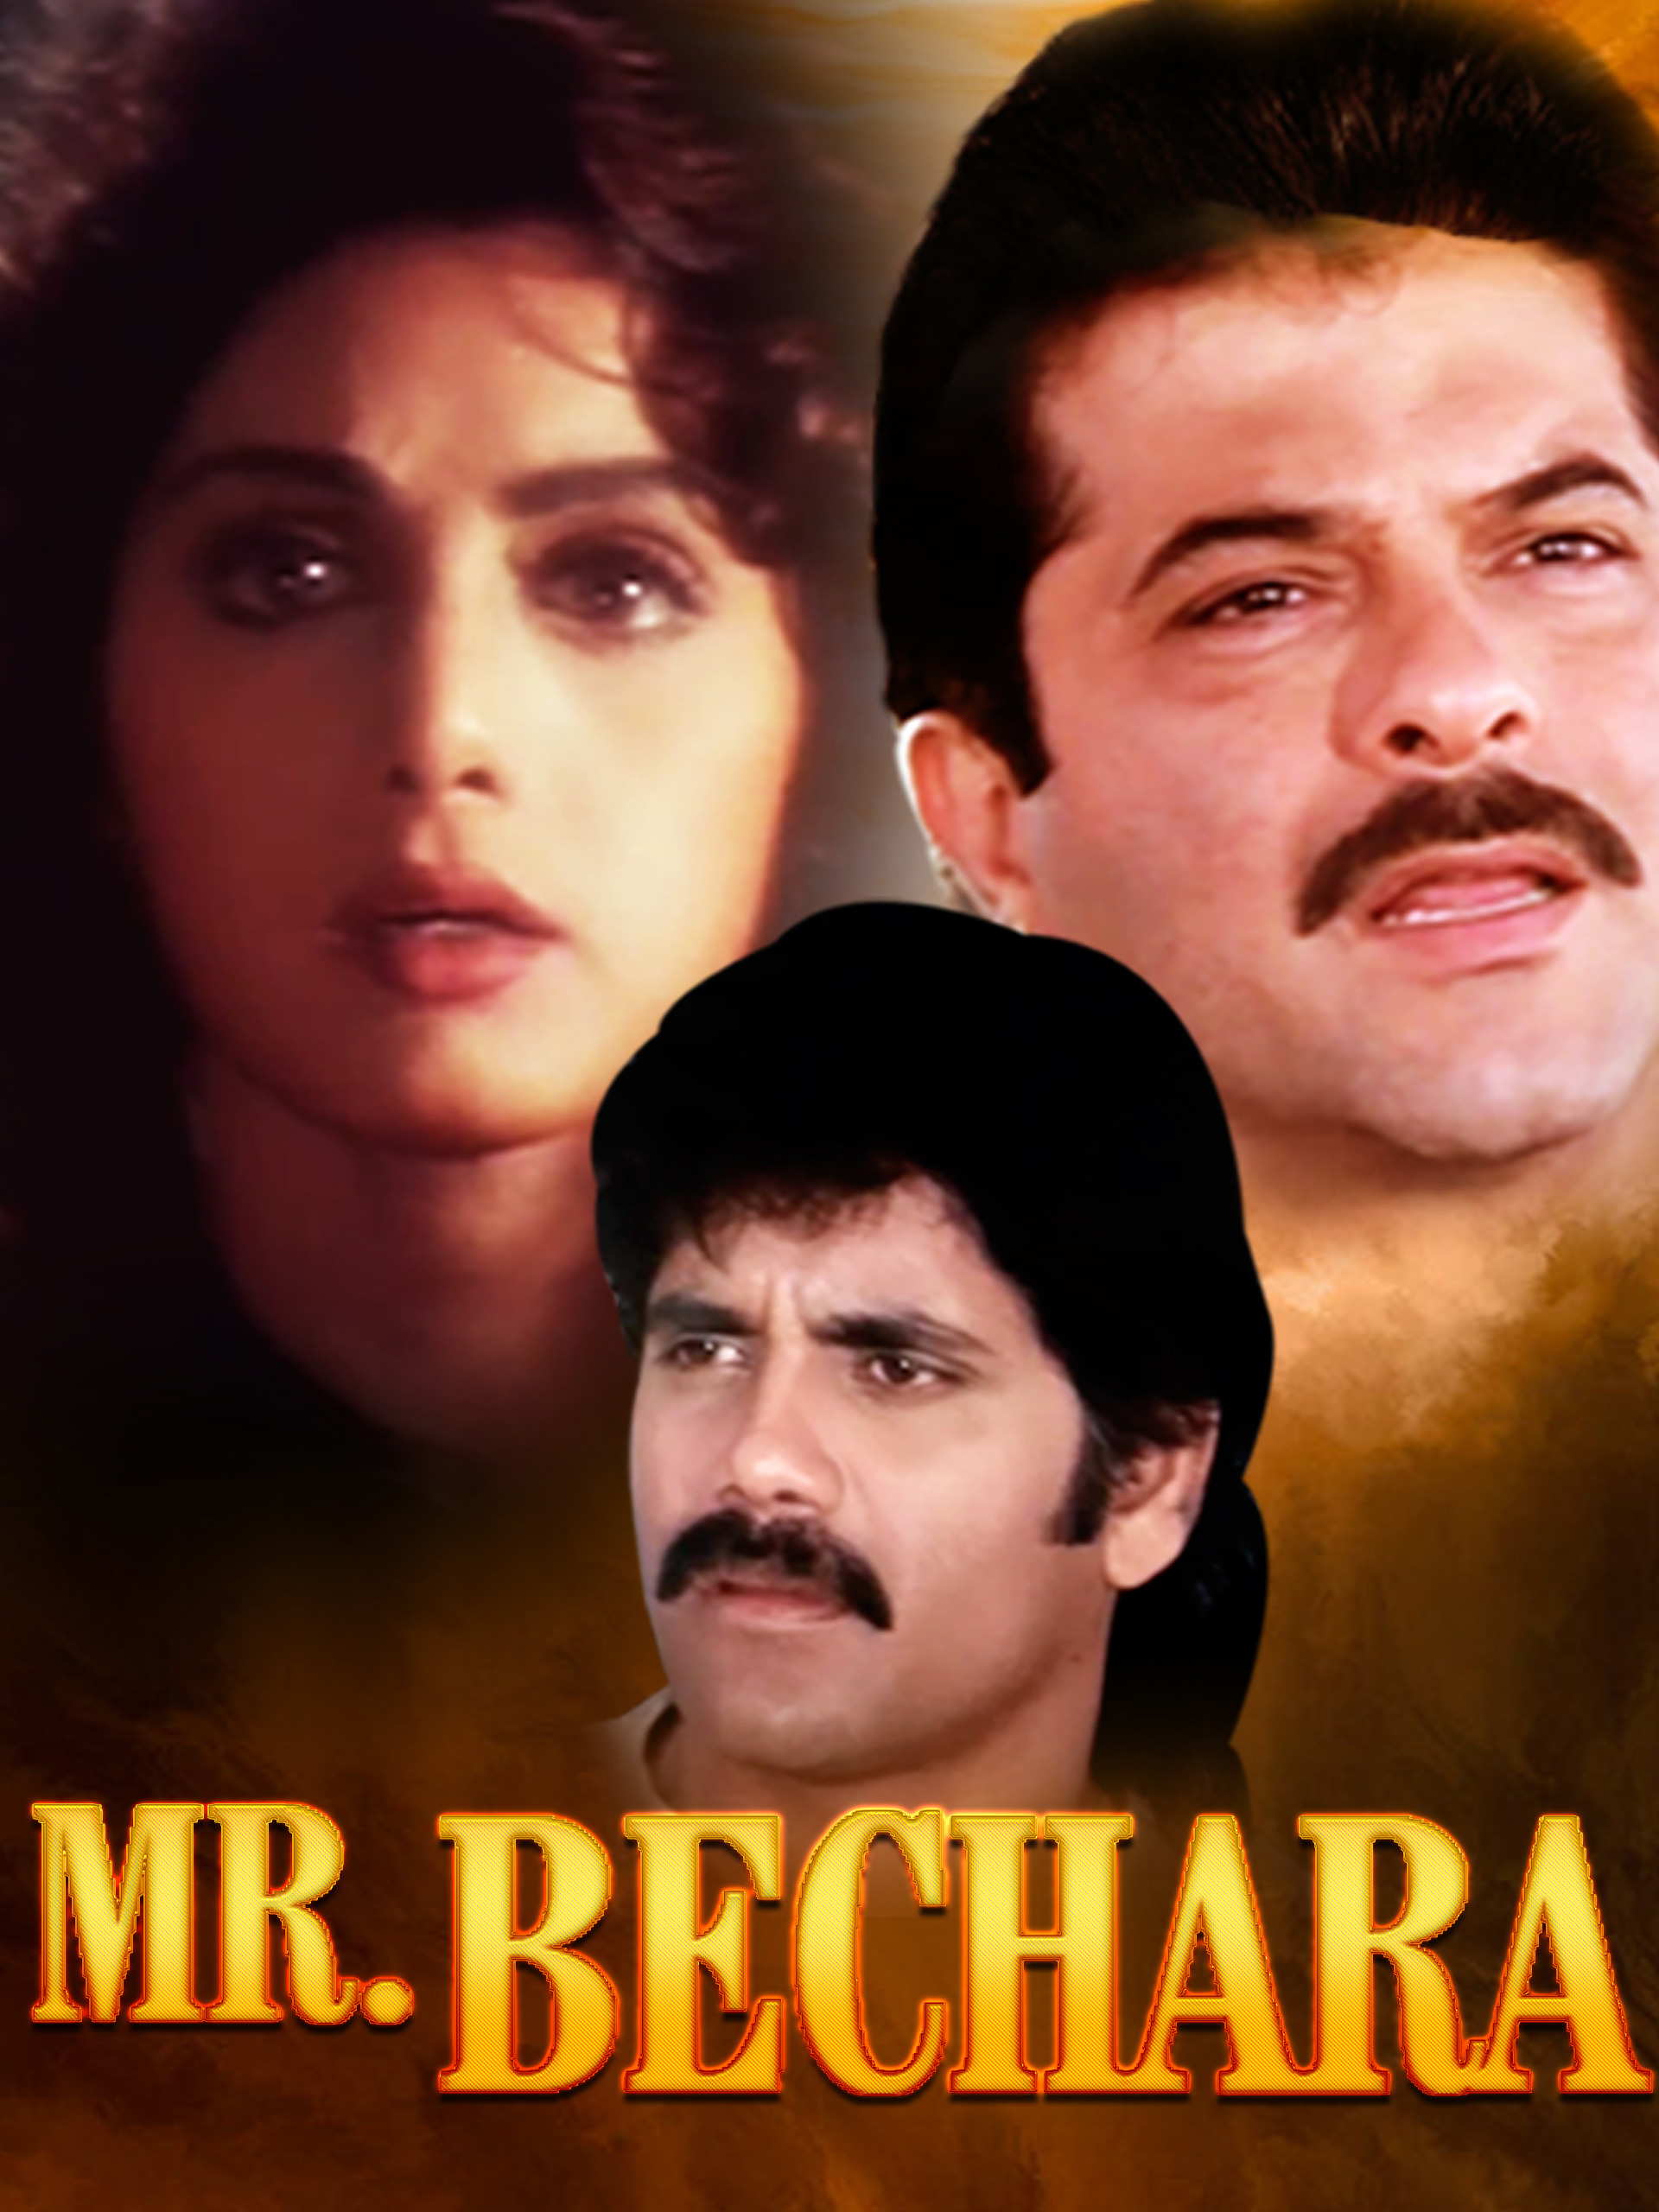 Mr Bechara Movie Review Release Date Songs Music Images Official Trailers Videos Photos News Bollywood Hungama